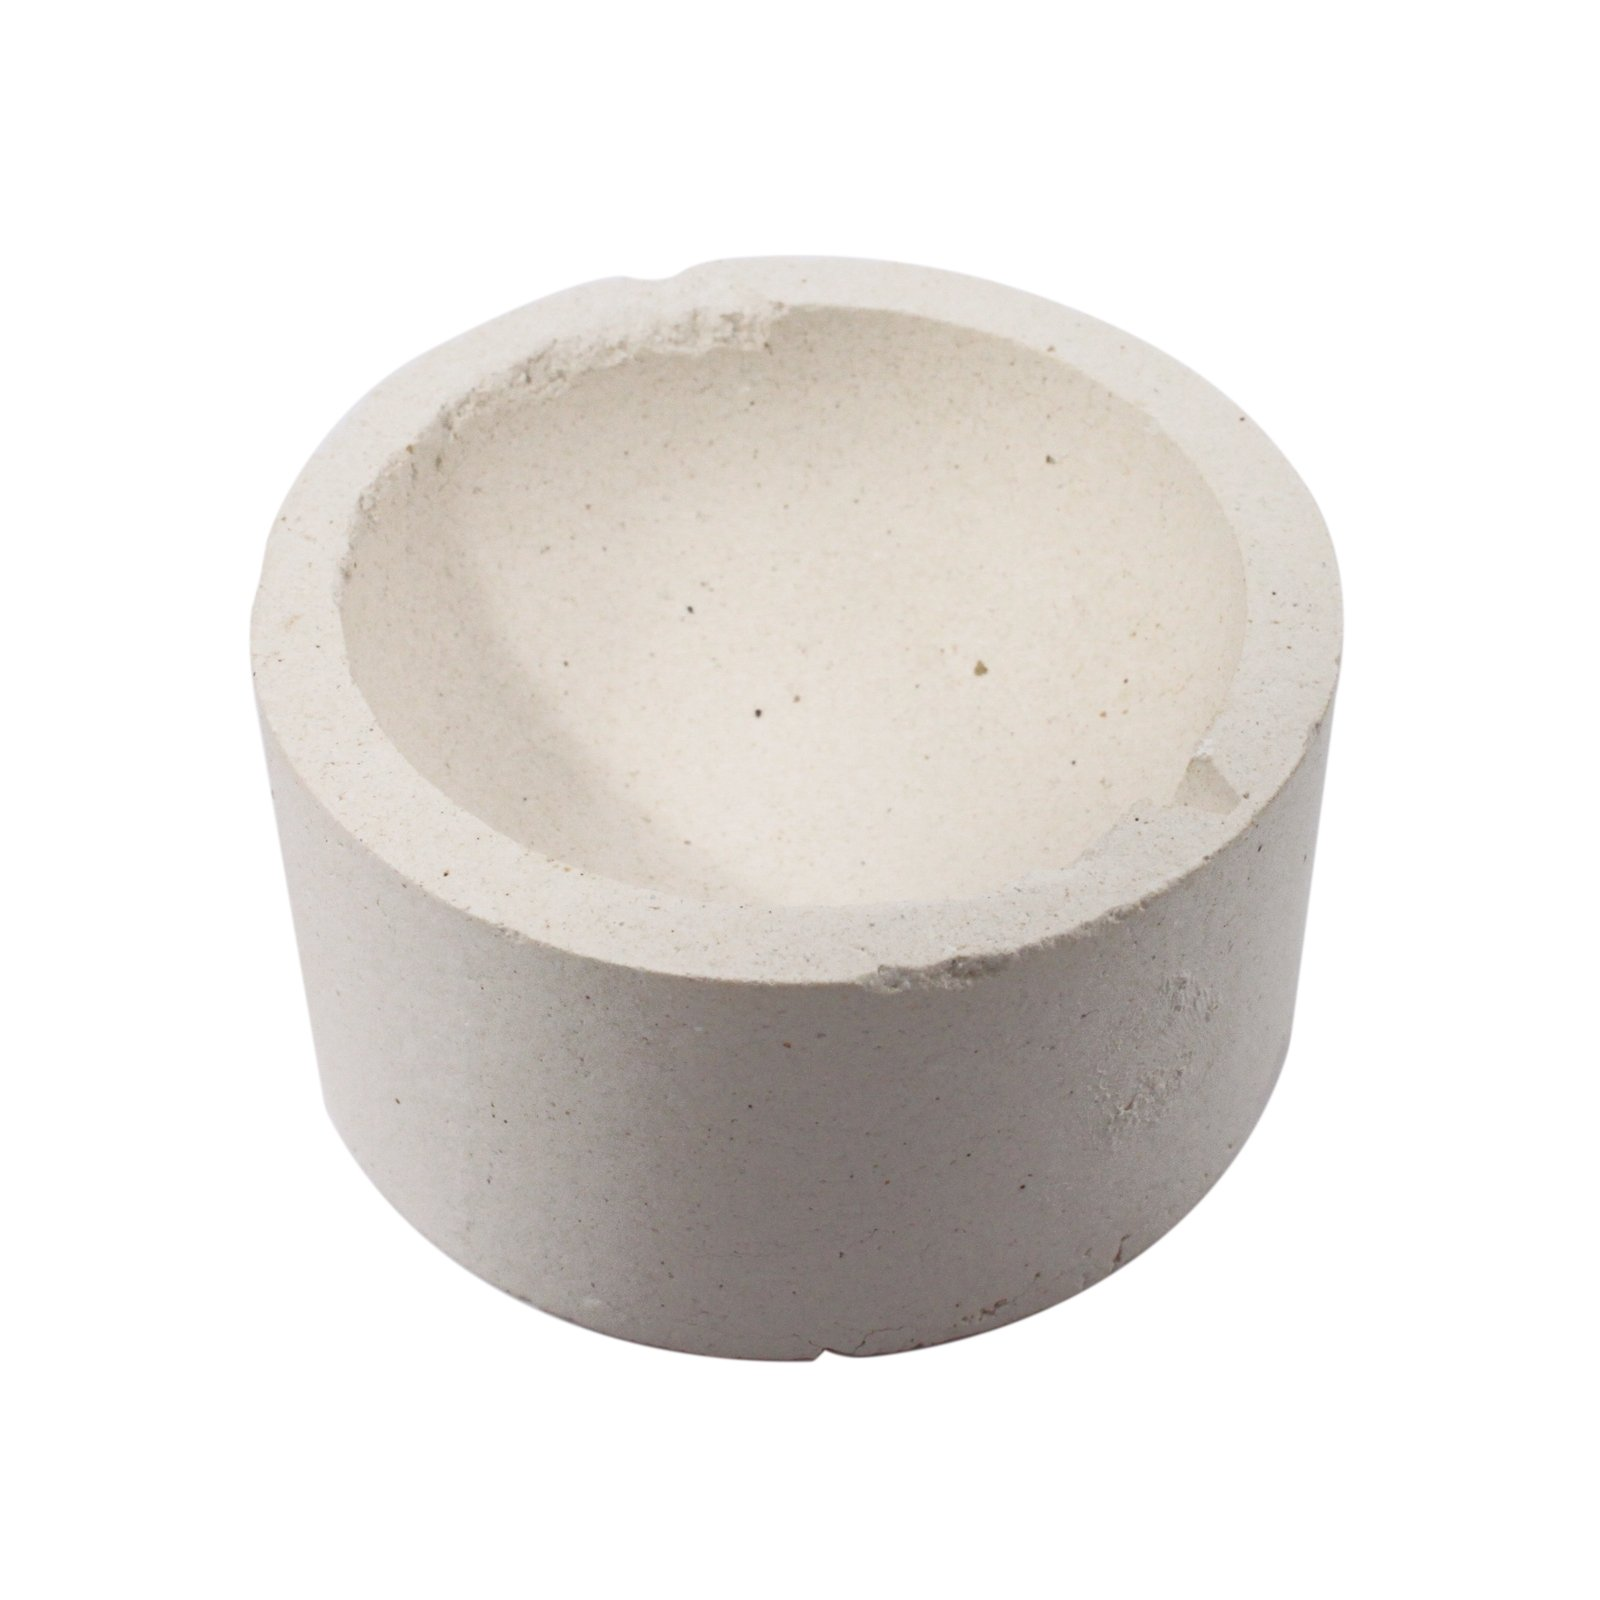 "3"" Alumina Ceramic Pot Flat Bottom"